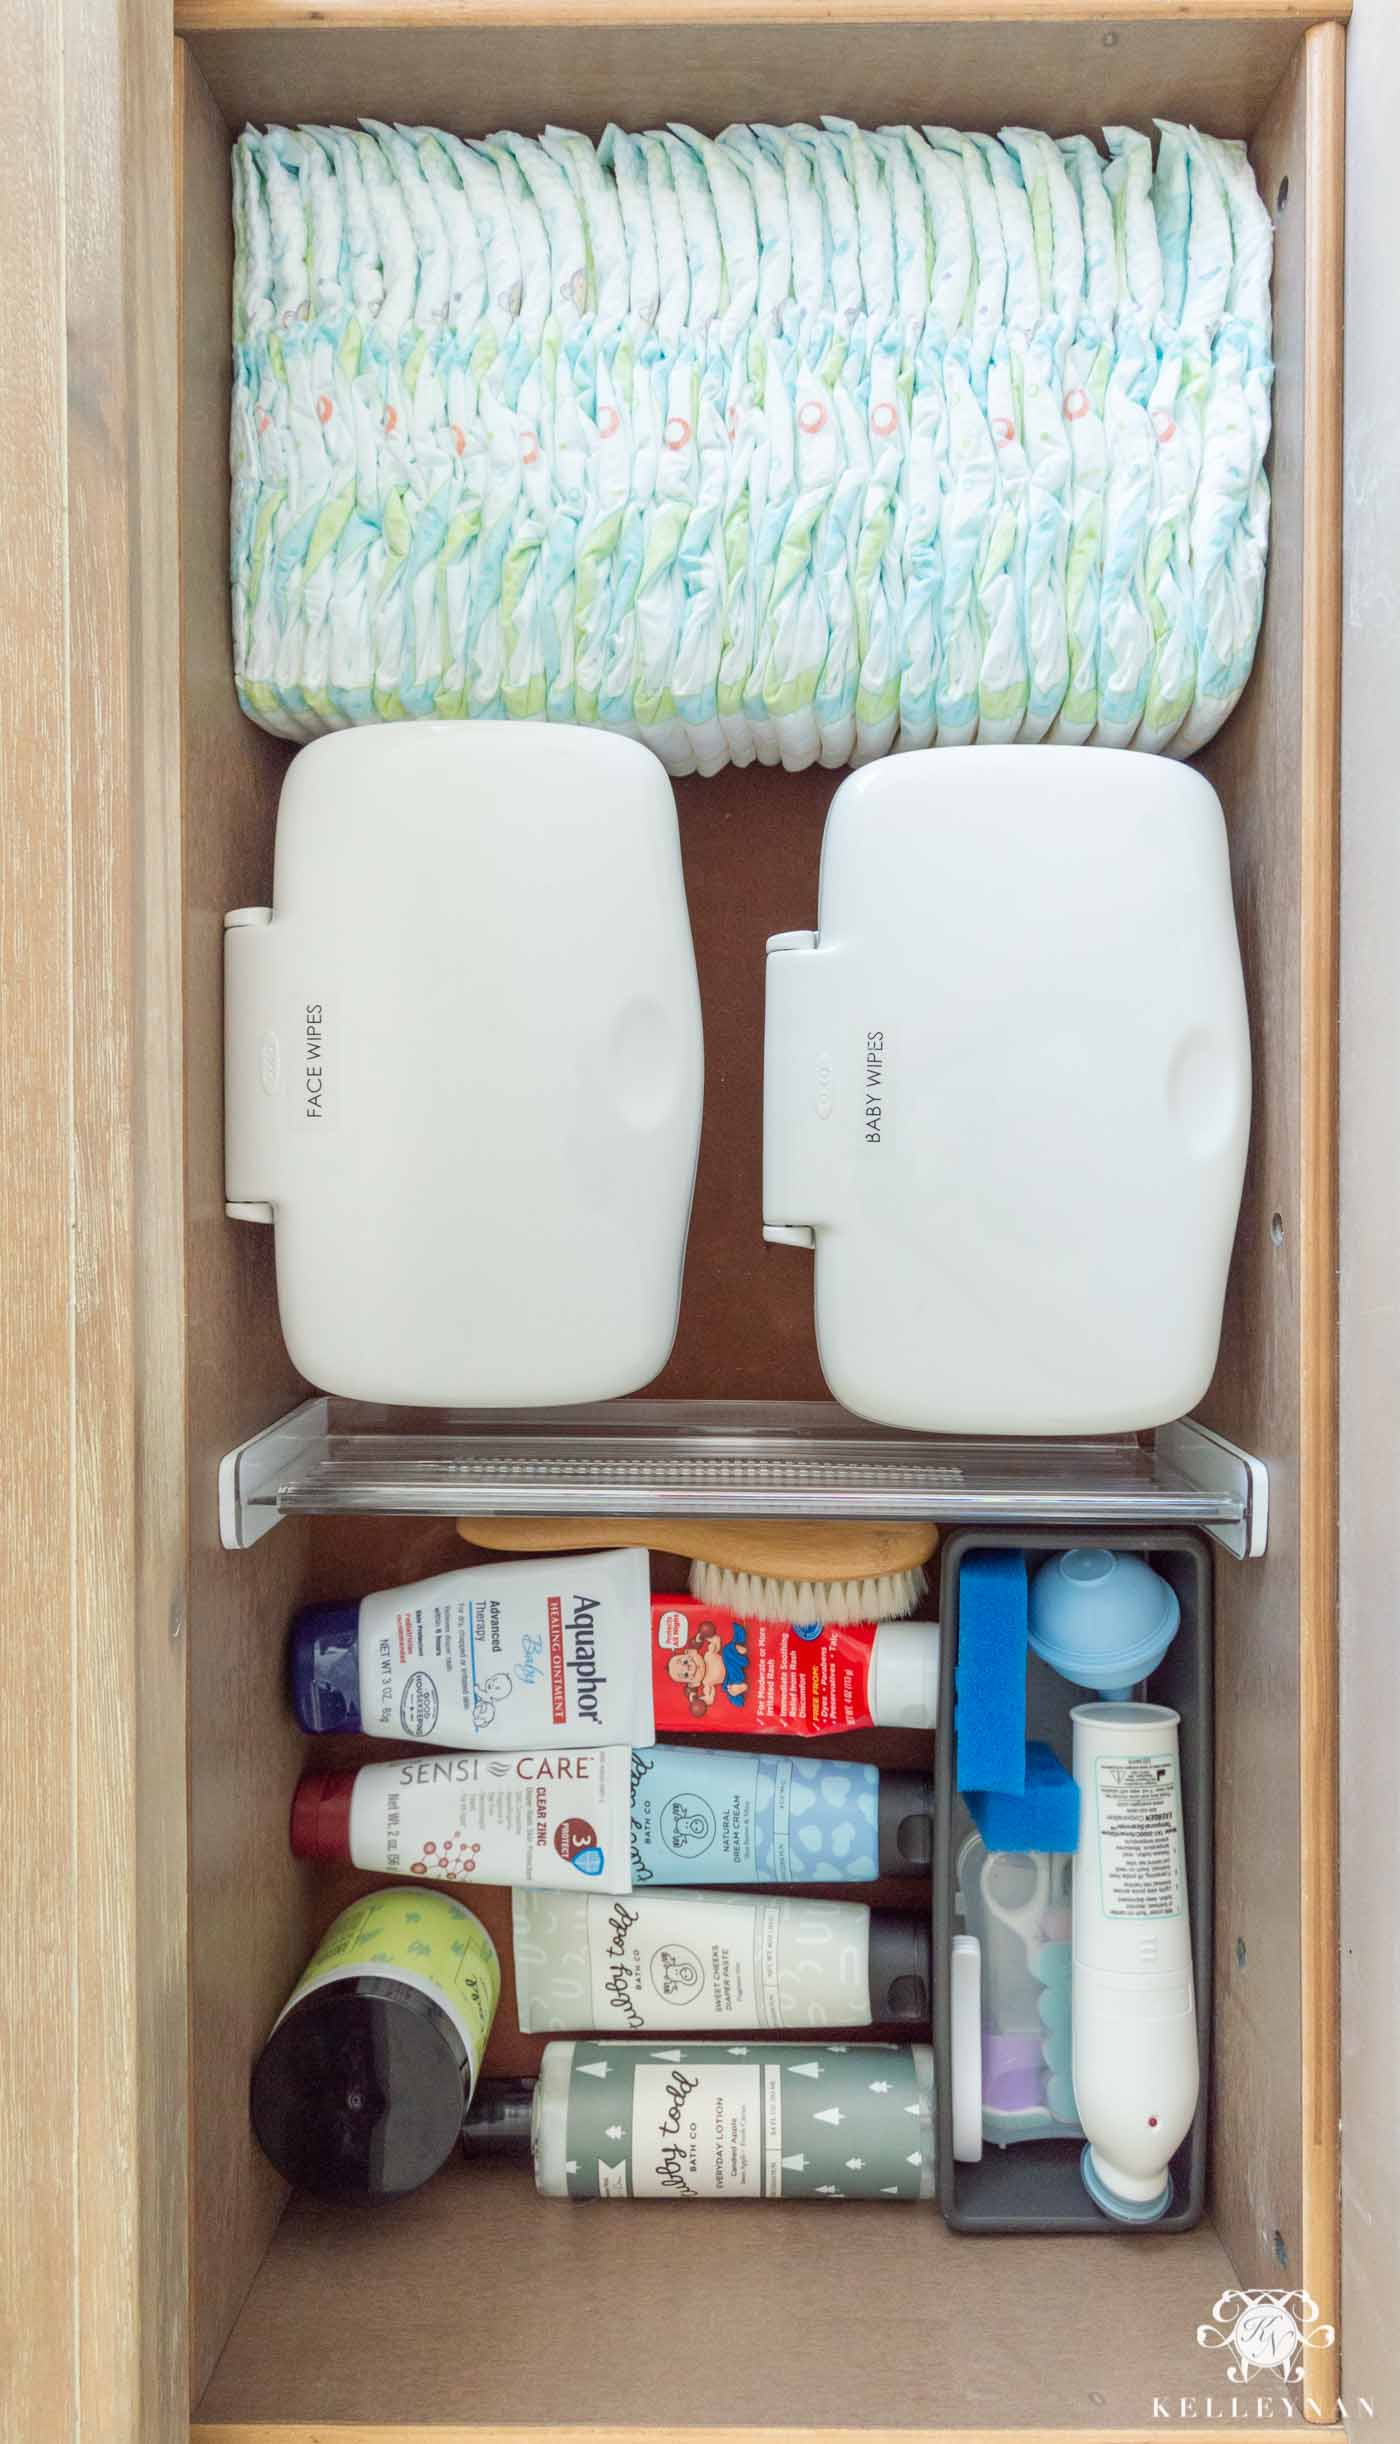 Nursery Dresser Organization and Organizing Your Baby's Changing Station